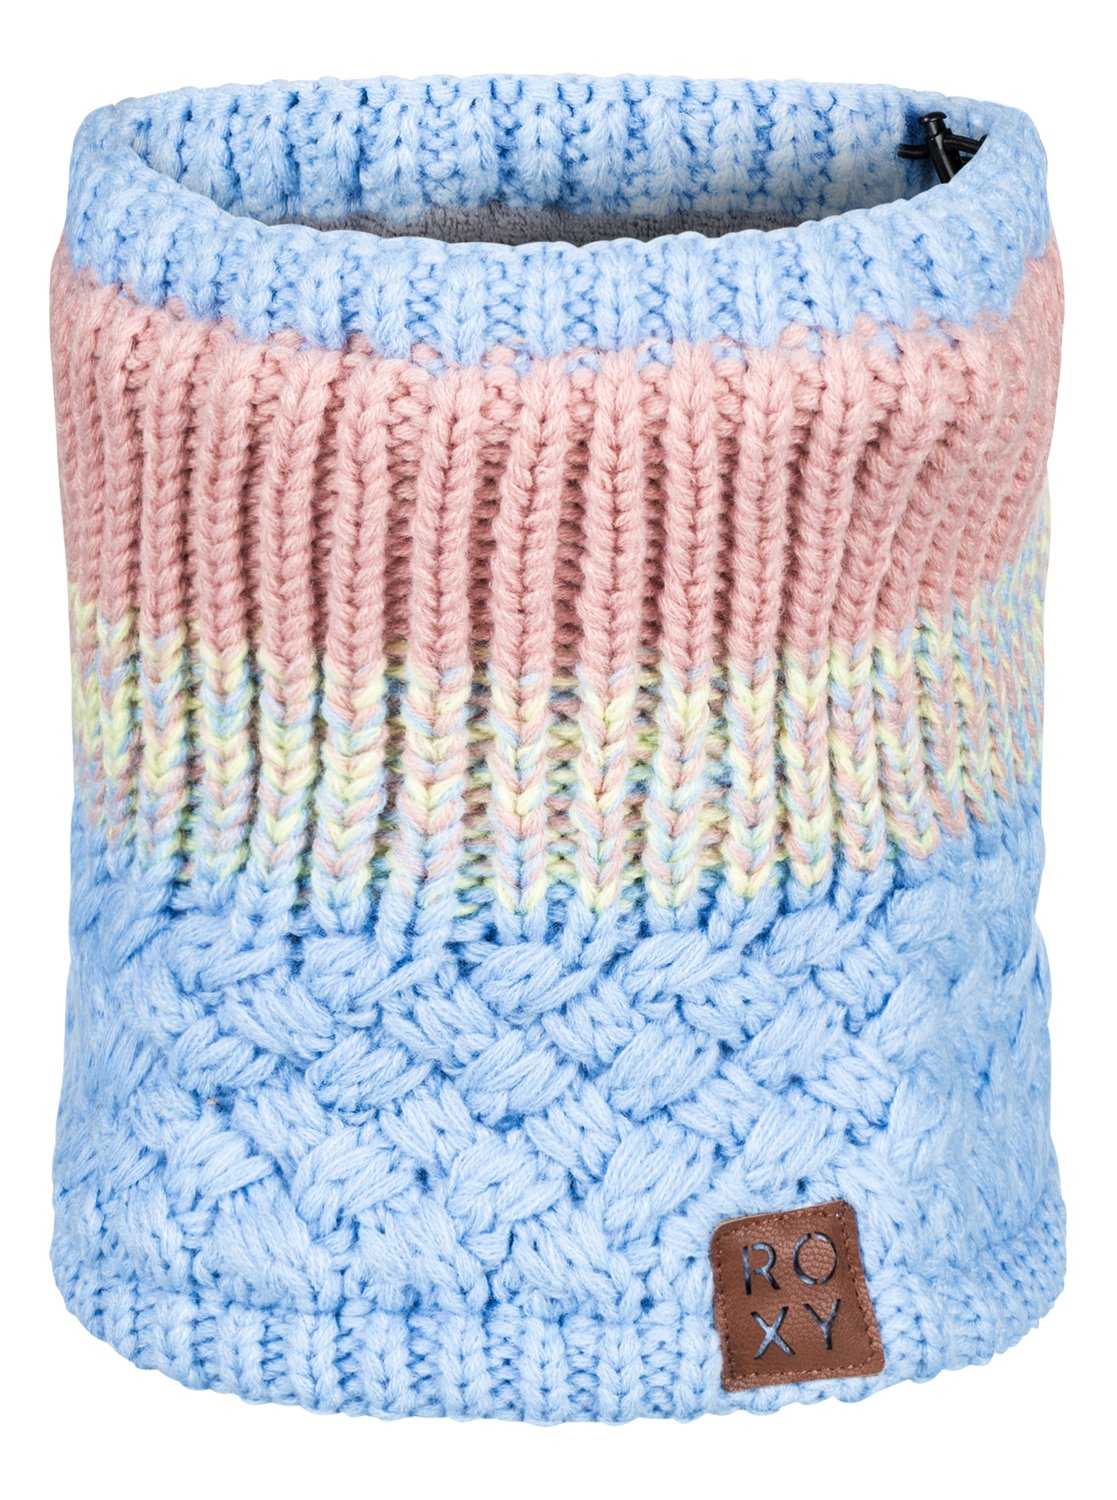 Roxy Neck Warmer